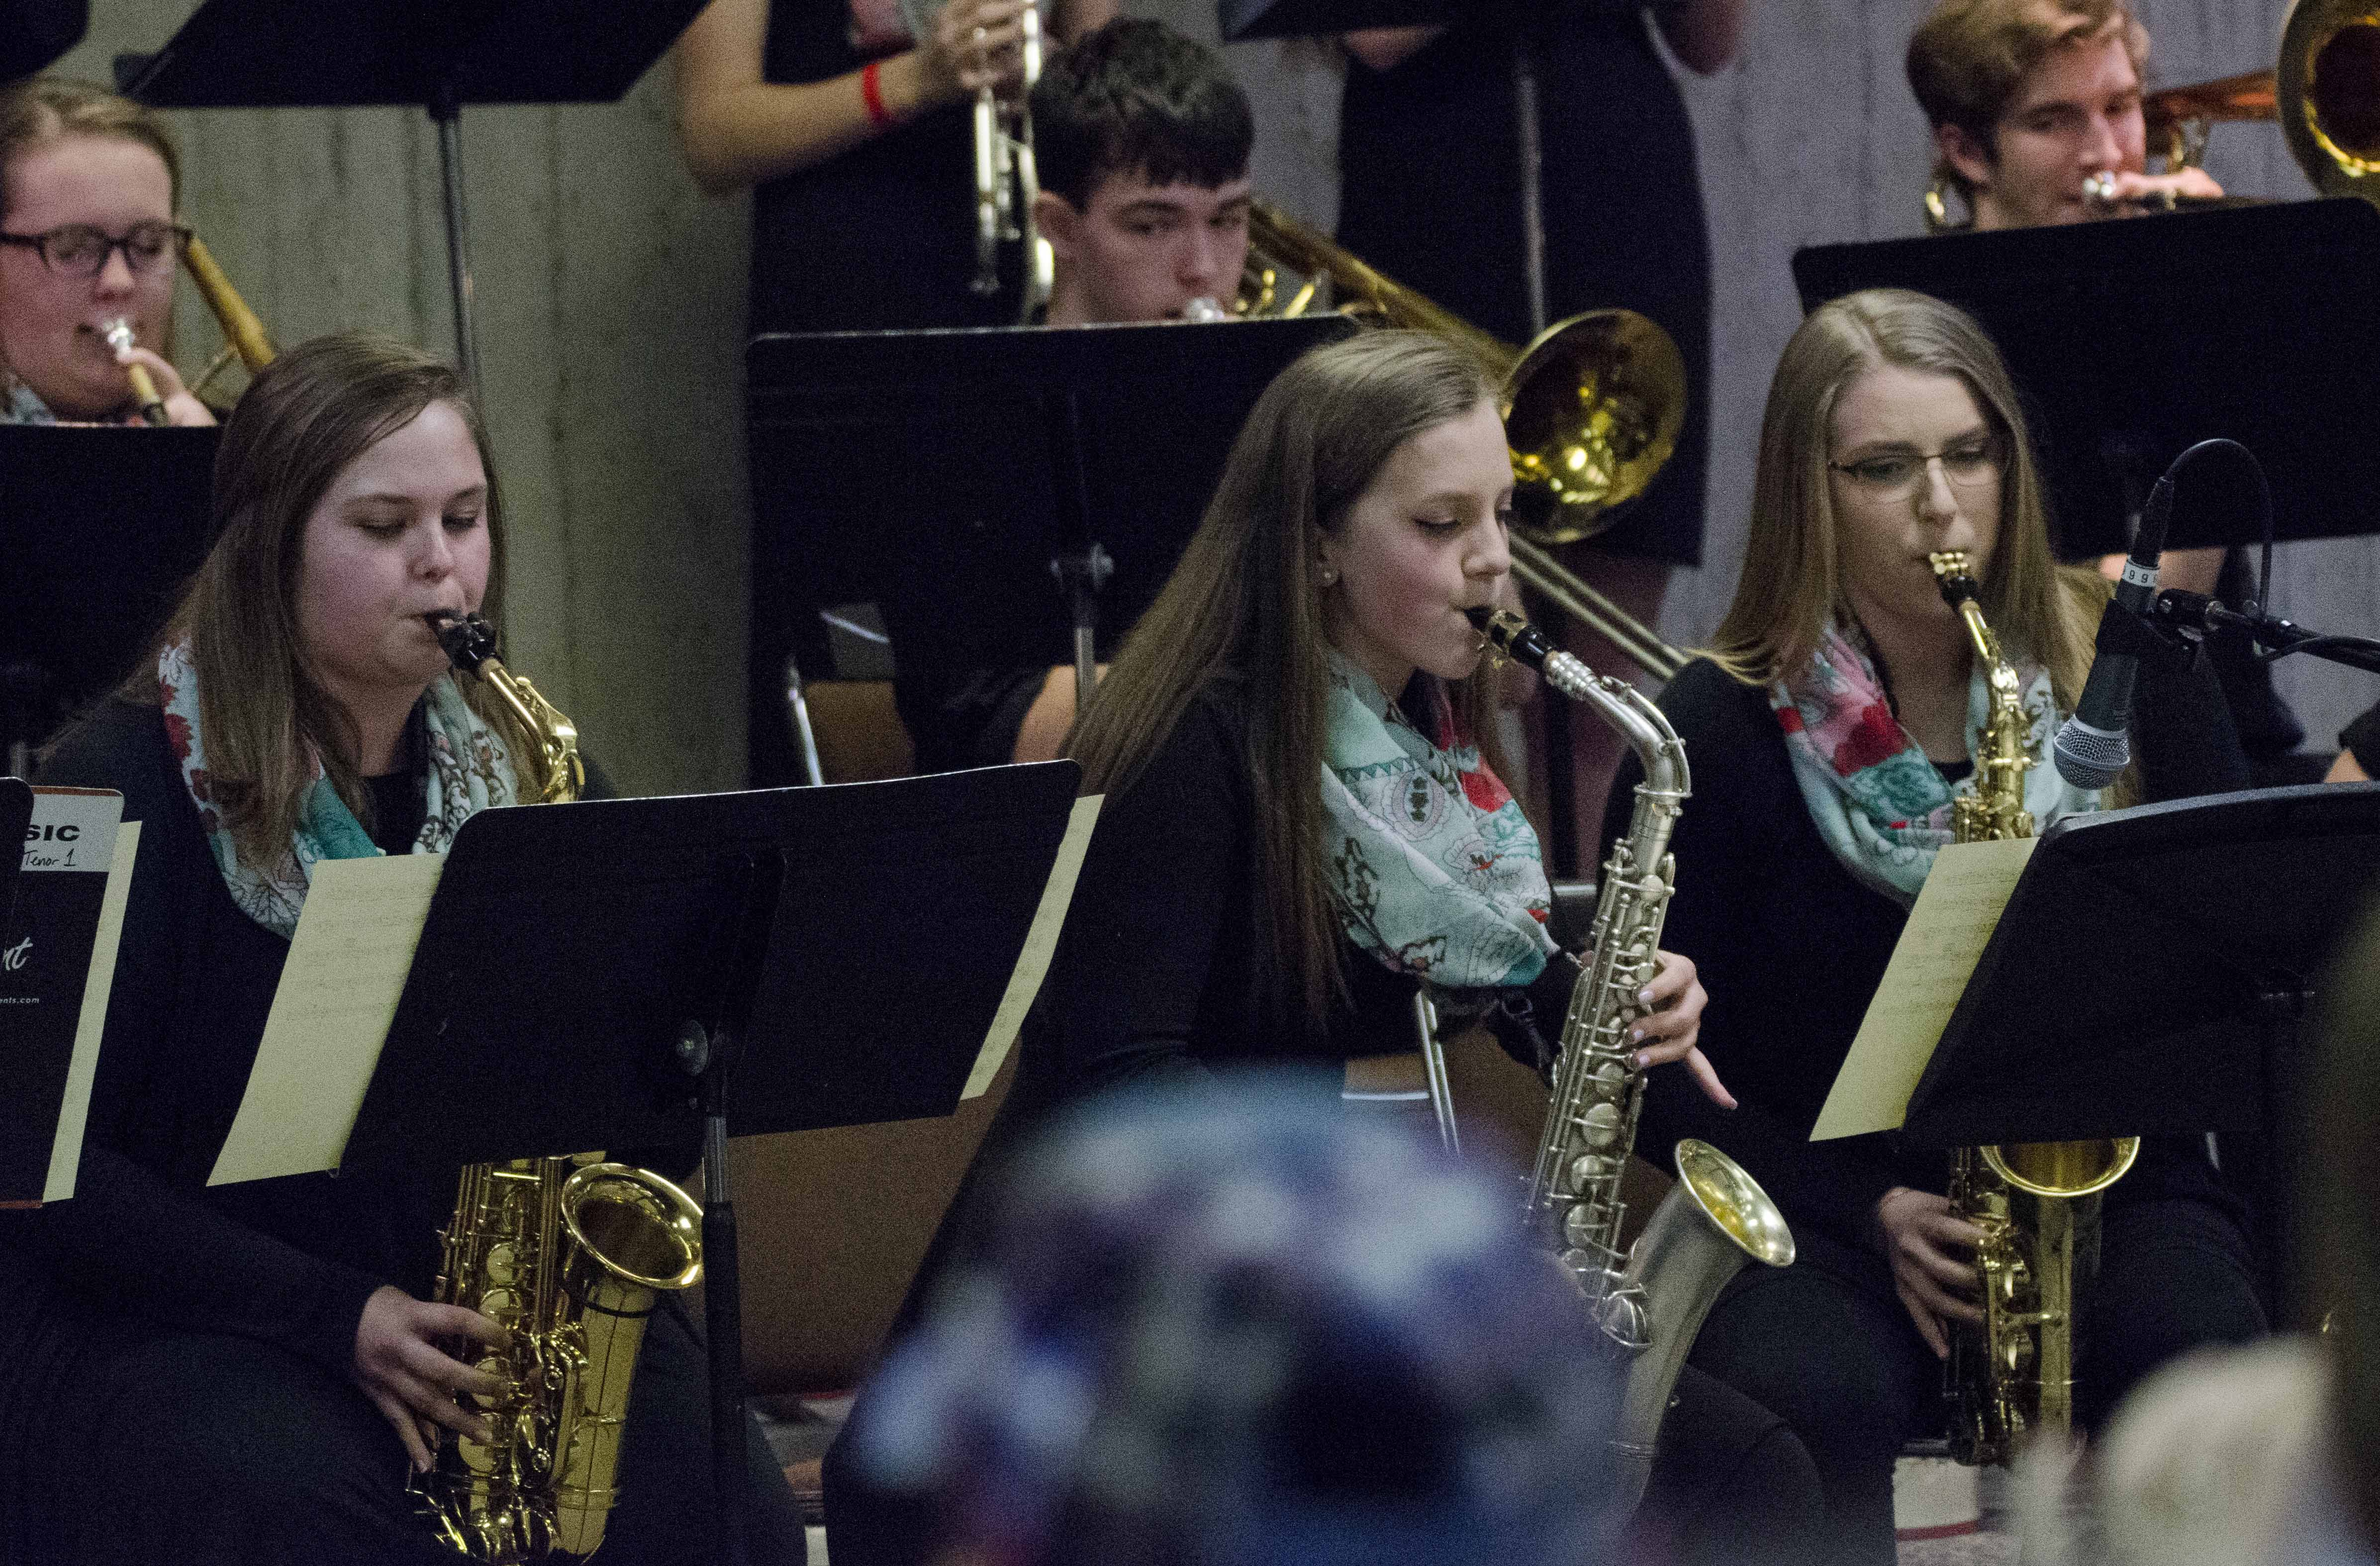 The Monticello Jazz Ensemble participated in the Iowa Jazz Band Championships Monday, April 3 in Des Moines. Among the performers, from left, are saxophone players Olivia Goodyear, Micah Williams and Abbey Beem. (Photos courtesy of Jill Dobel)